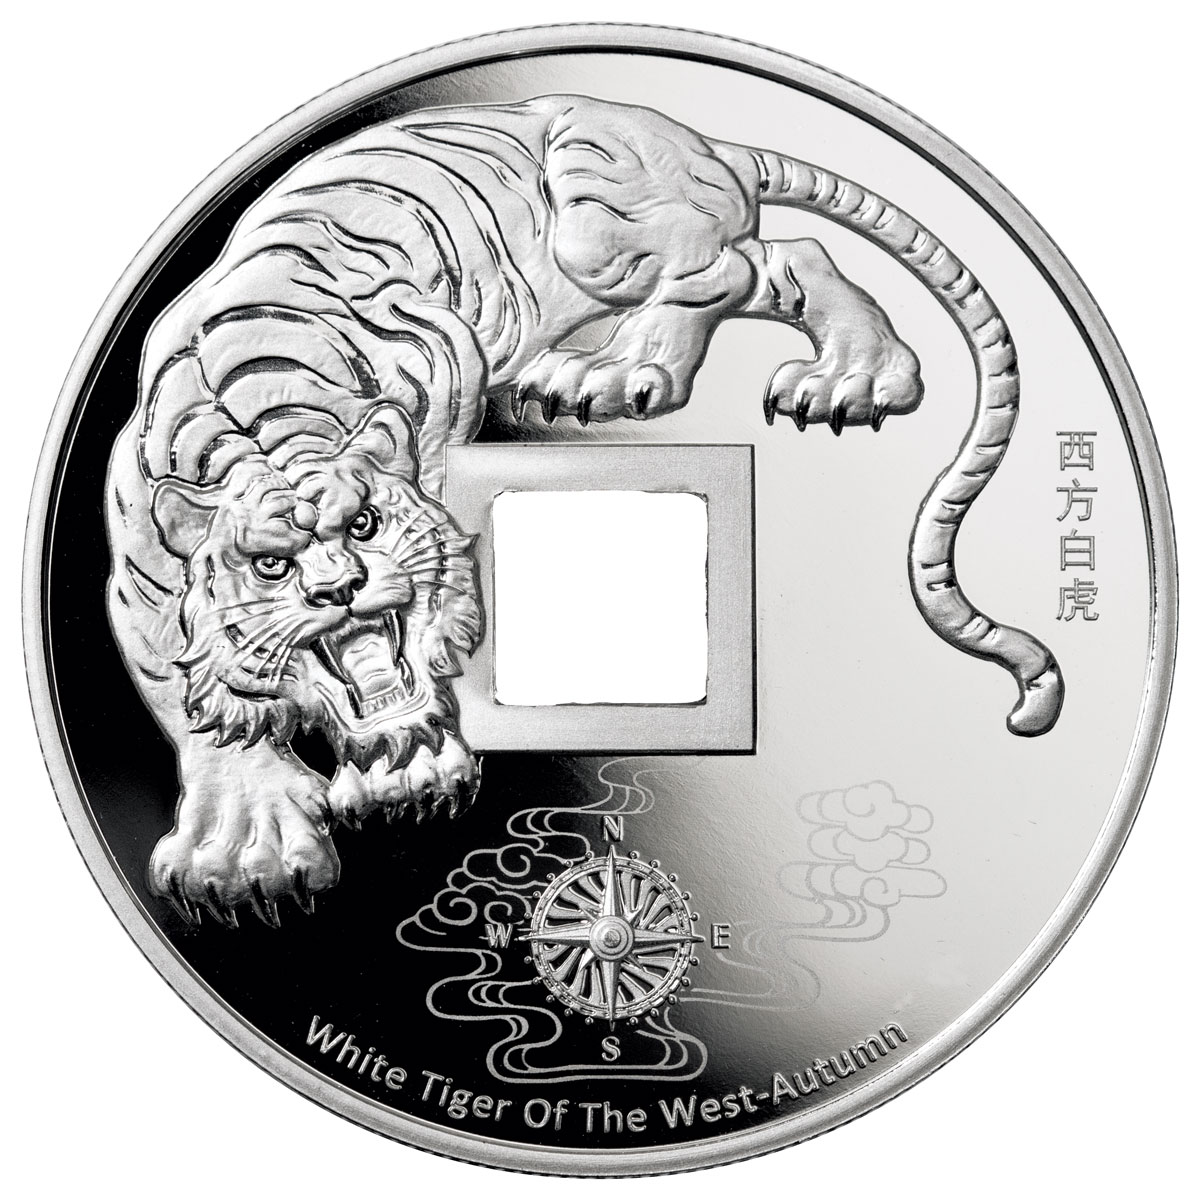 2020 China White Tiger of the West Vault Protector 1 oz Silver Proof Medal GEM Proof